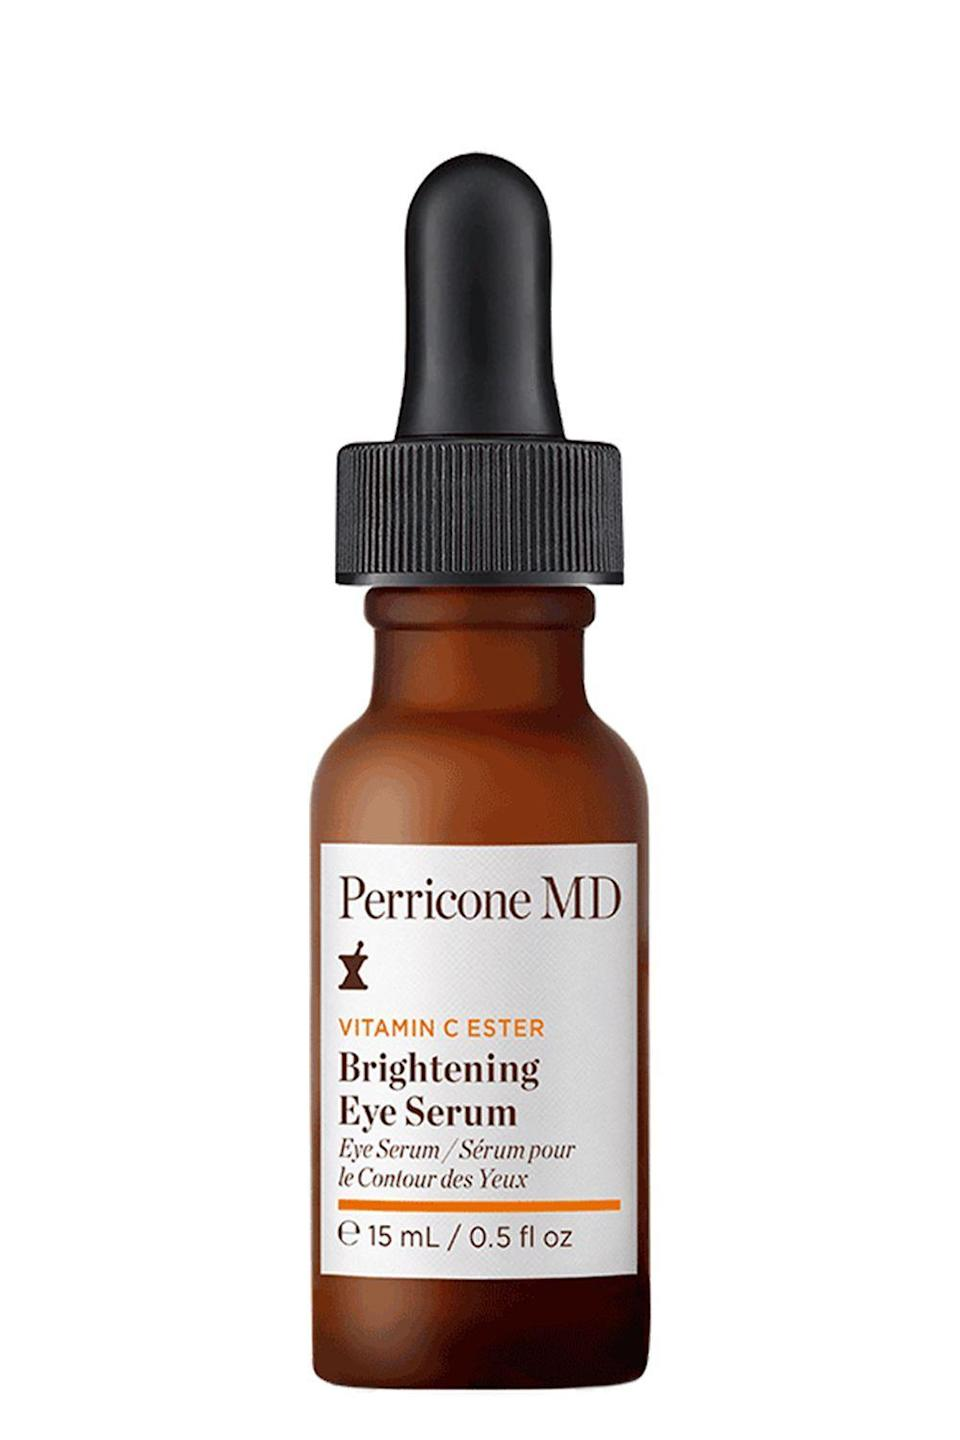 "<p><strong>Perricone MD</strong></p><p>ulta.com</p><p><strong>$60.00</strong></p><p><a href=""https://go.redirectingat.com?id=74968X1596630&url=https%3A%2F%2Fwww.ulta.com%2Fvitamin-c-ester-brightening-eye-serum%3FproductId%3DxlsImpprod19011043&sref=https%3A%2F%2Fwww.cosmopolitan.com%2Fstyle-beauty%2Fbeauty%2Fg12091058%2Fbest-vitamin-c-serum-face-skin%2F"" rel=""nofollow noopener"" target=""_blank"" data-ylk=""slk:Shop Now"" class=""link rapid-noclick-resp"">Shop Now</a></p><p>Those <a href=""https://www.cosmopolitan.com/style-beauty/beauty/g21990502/dark-circles-under-eye-treatment-creams/"" rel=""nofollow noopener"" target=""_blank"" data-ylk=""slk:dark circles"" class=""link rapid-noclick-resp"">dark circles</a> under your eyes? Help lessen their appearance with this vitamin C eye serum. With continued use, it'll <strong>brighten and thicken the skin under your eye</strong><strong>s</strong> (vitamin C boosts collagen), which will make the blue-ish blood vessels underneath your skin (i.e., your dark circles) less visible.</p>"